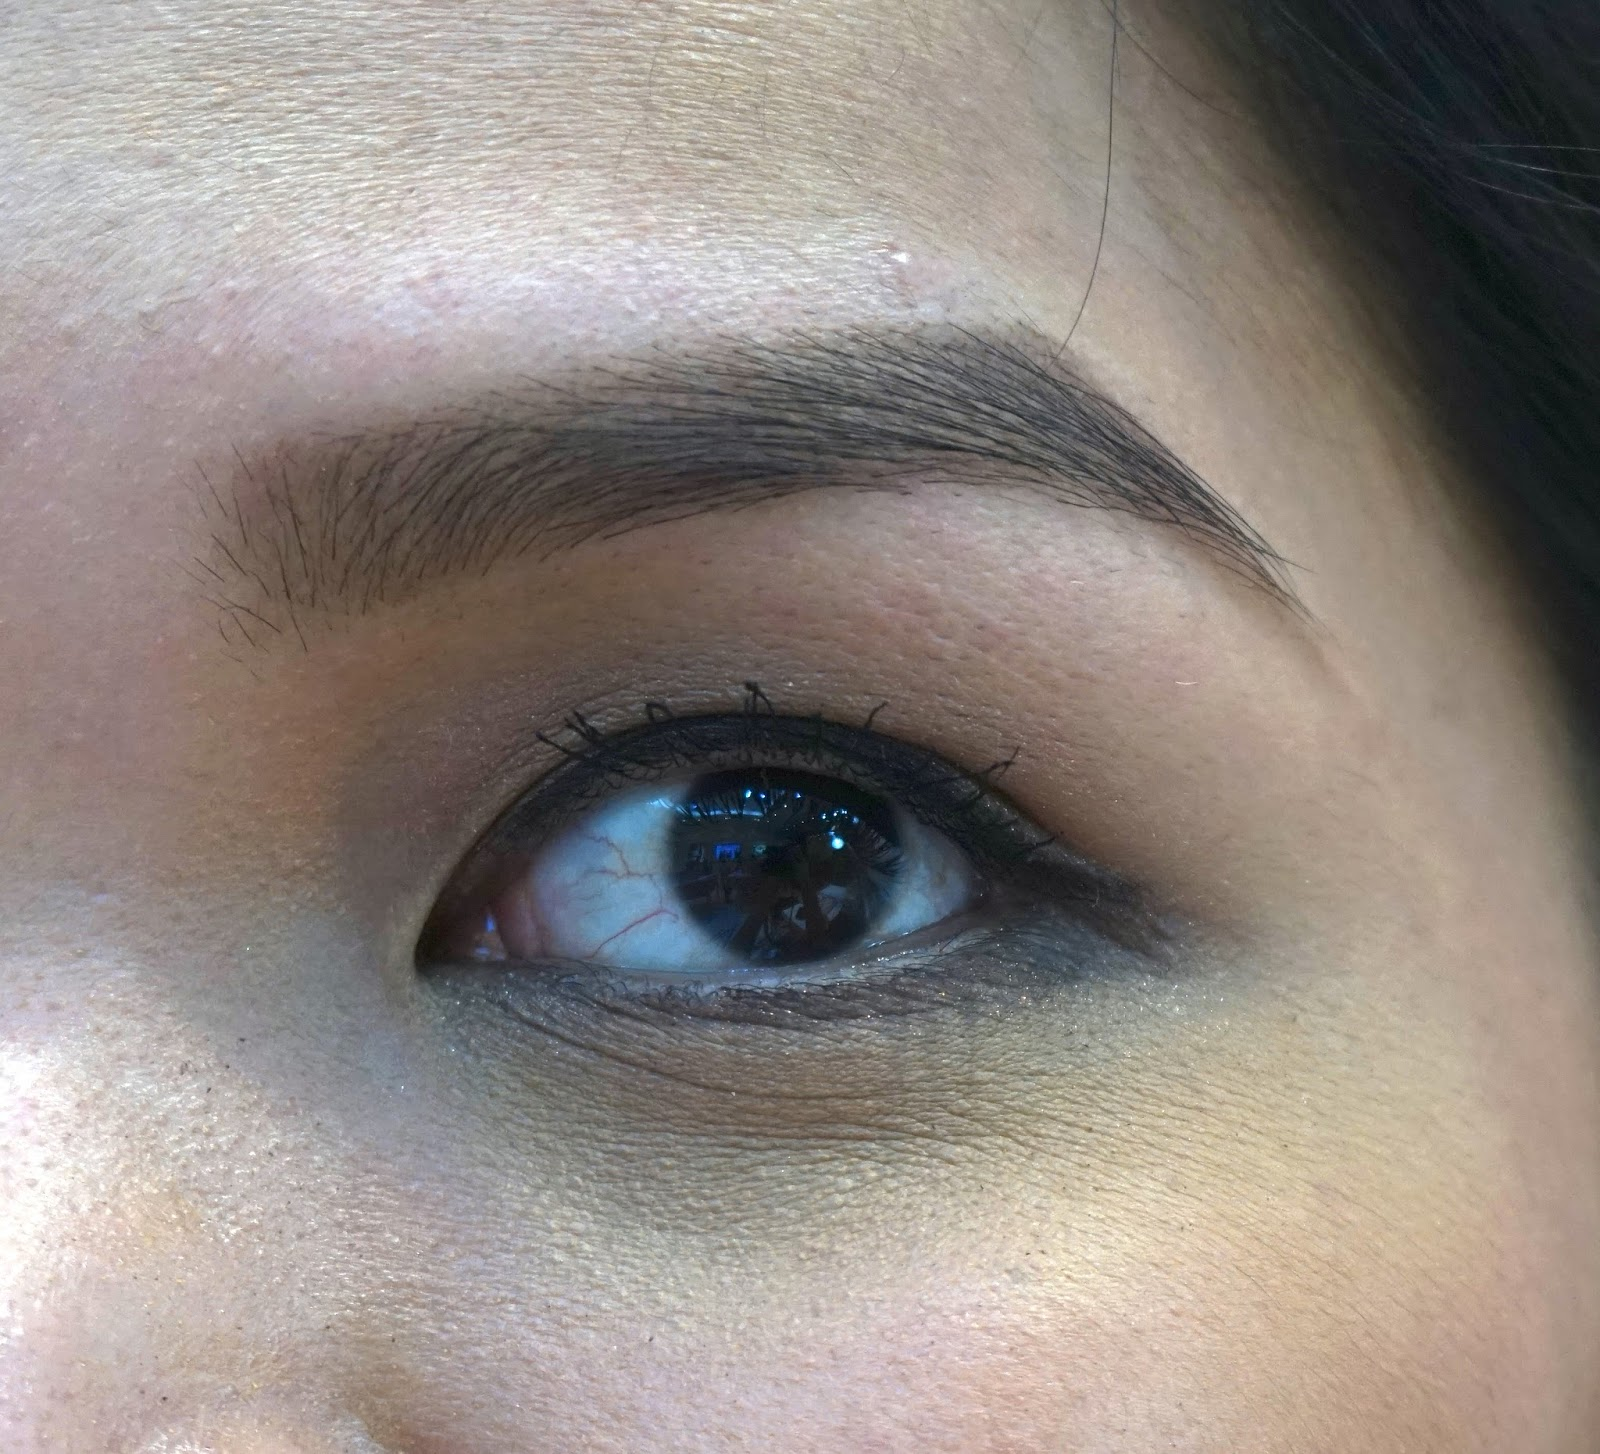 Benefit Brow Bar Brow Waxing Review/Experience (Greenbelt 5) | The ...